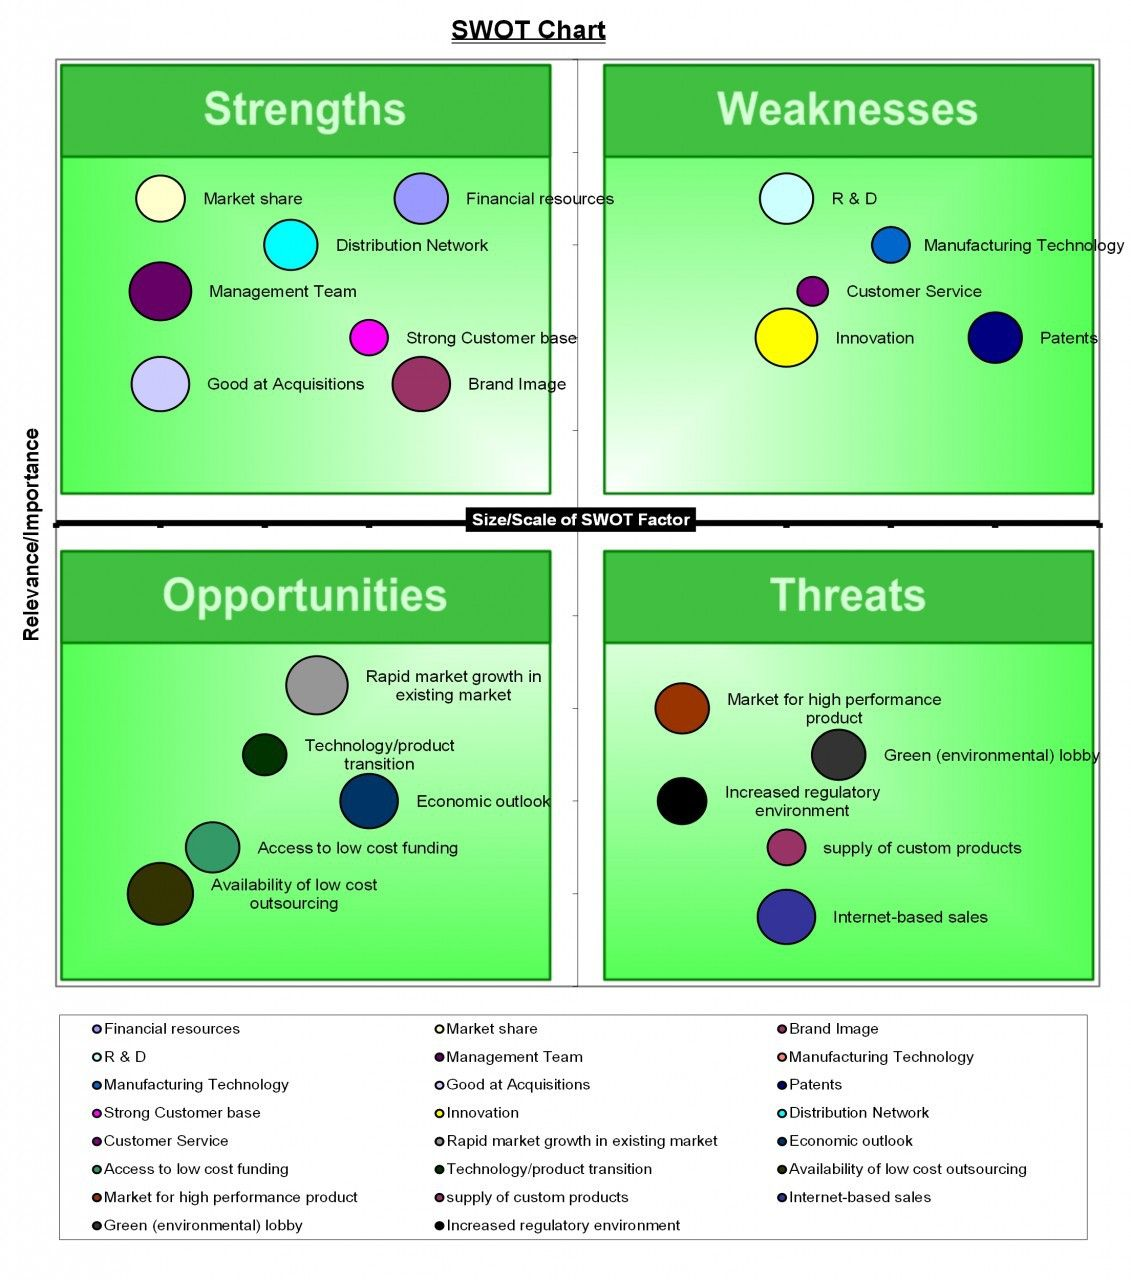 Swot Analysis Template Excel Swot Matrix Excel Template Swot Analysis Template Swot Analysis Excel Templates